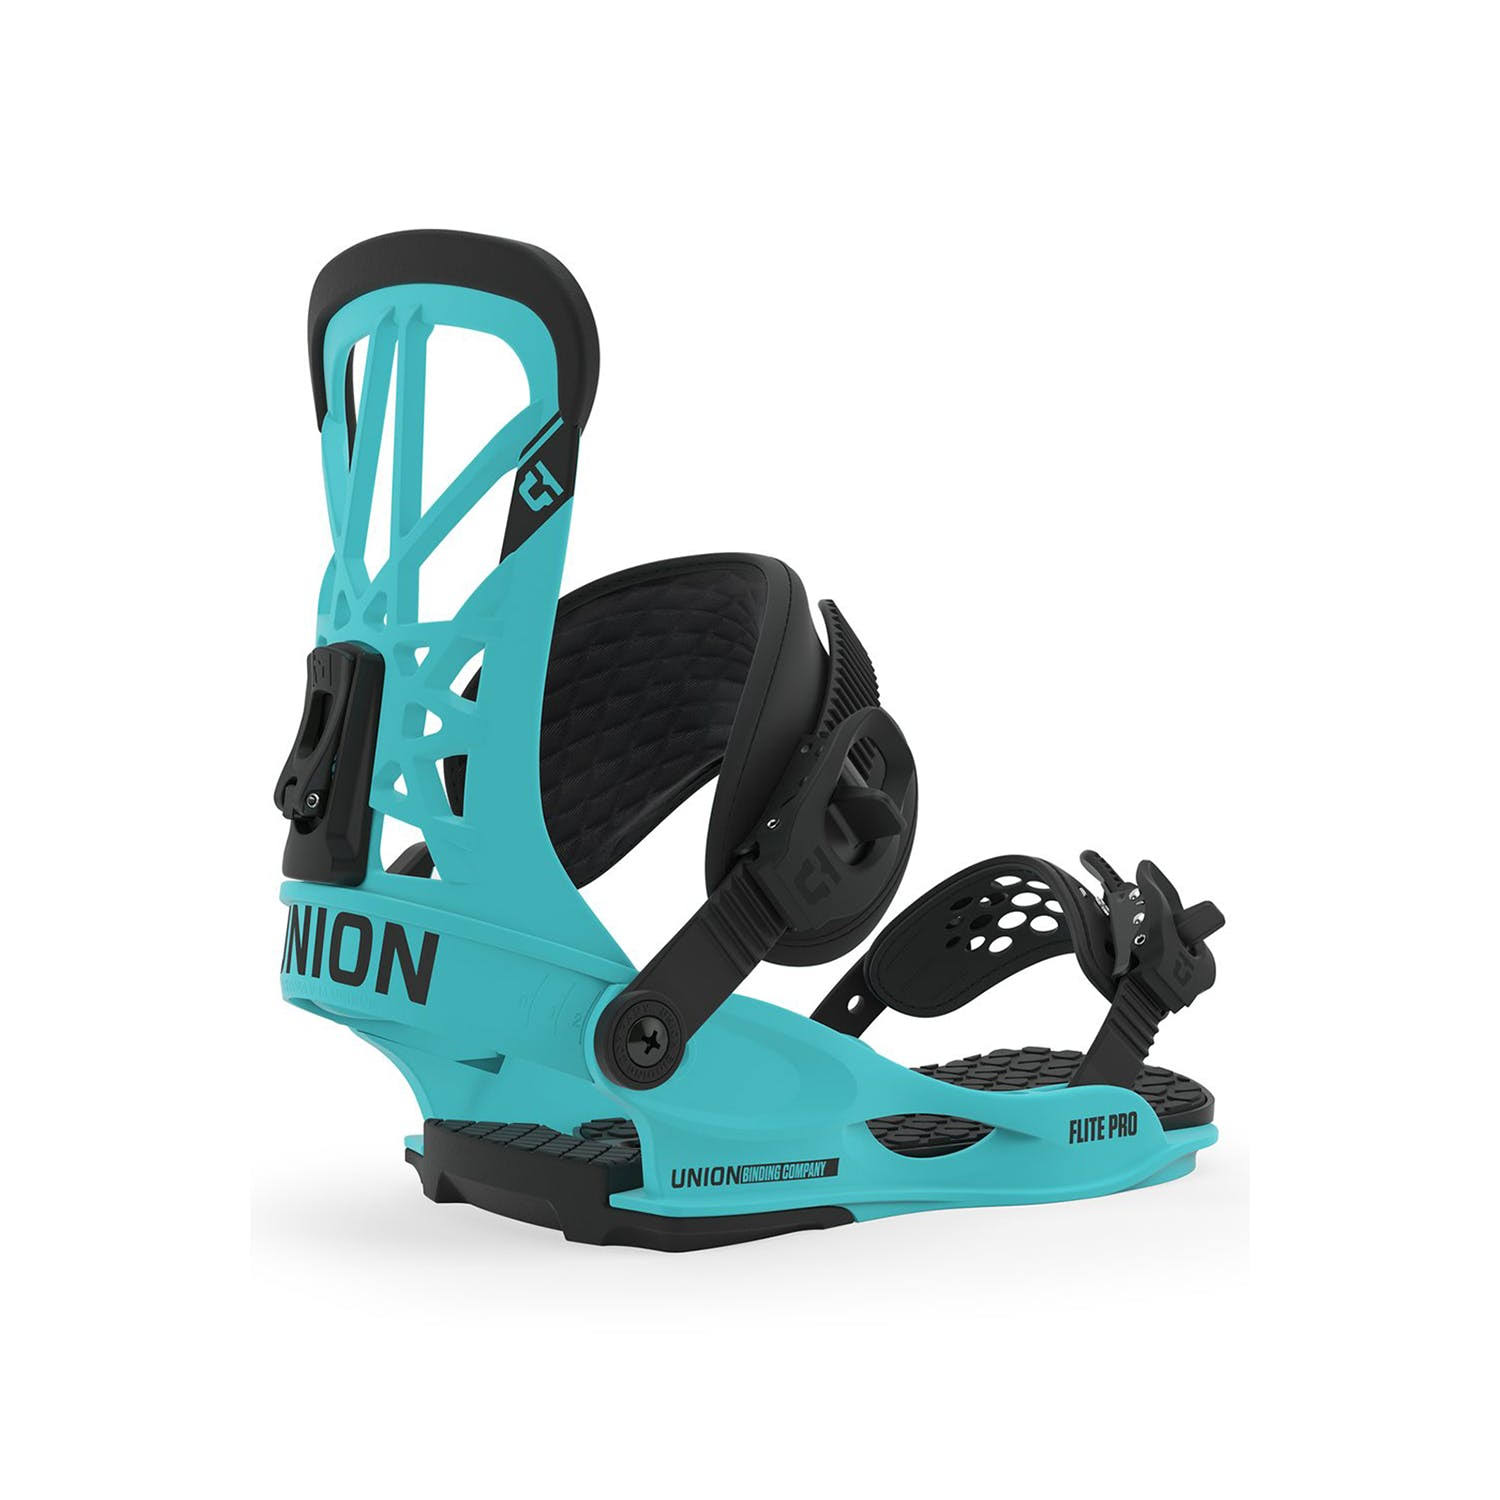 Union Flite Pro Snowboard Bindings - Hyperblue